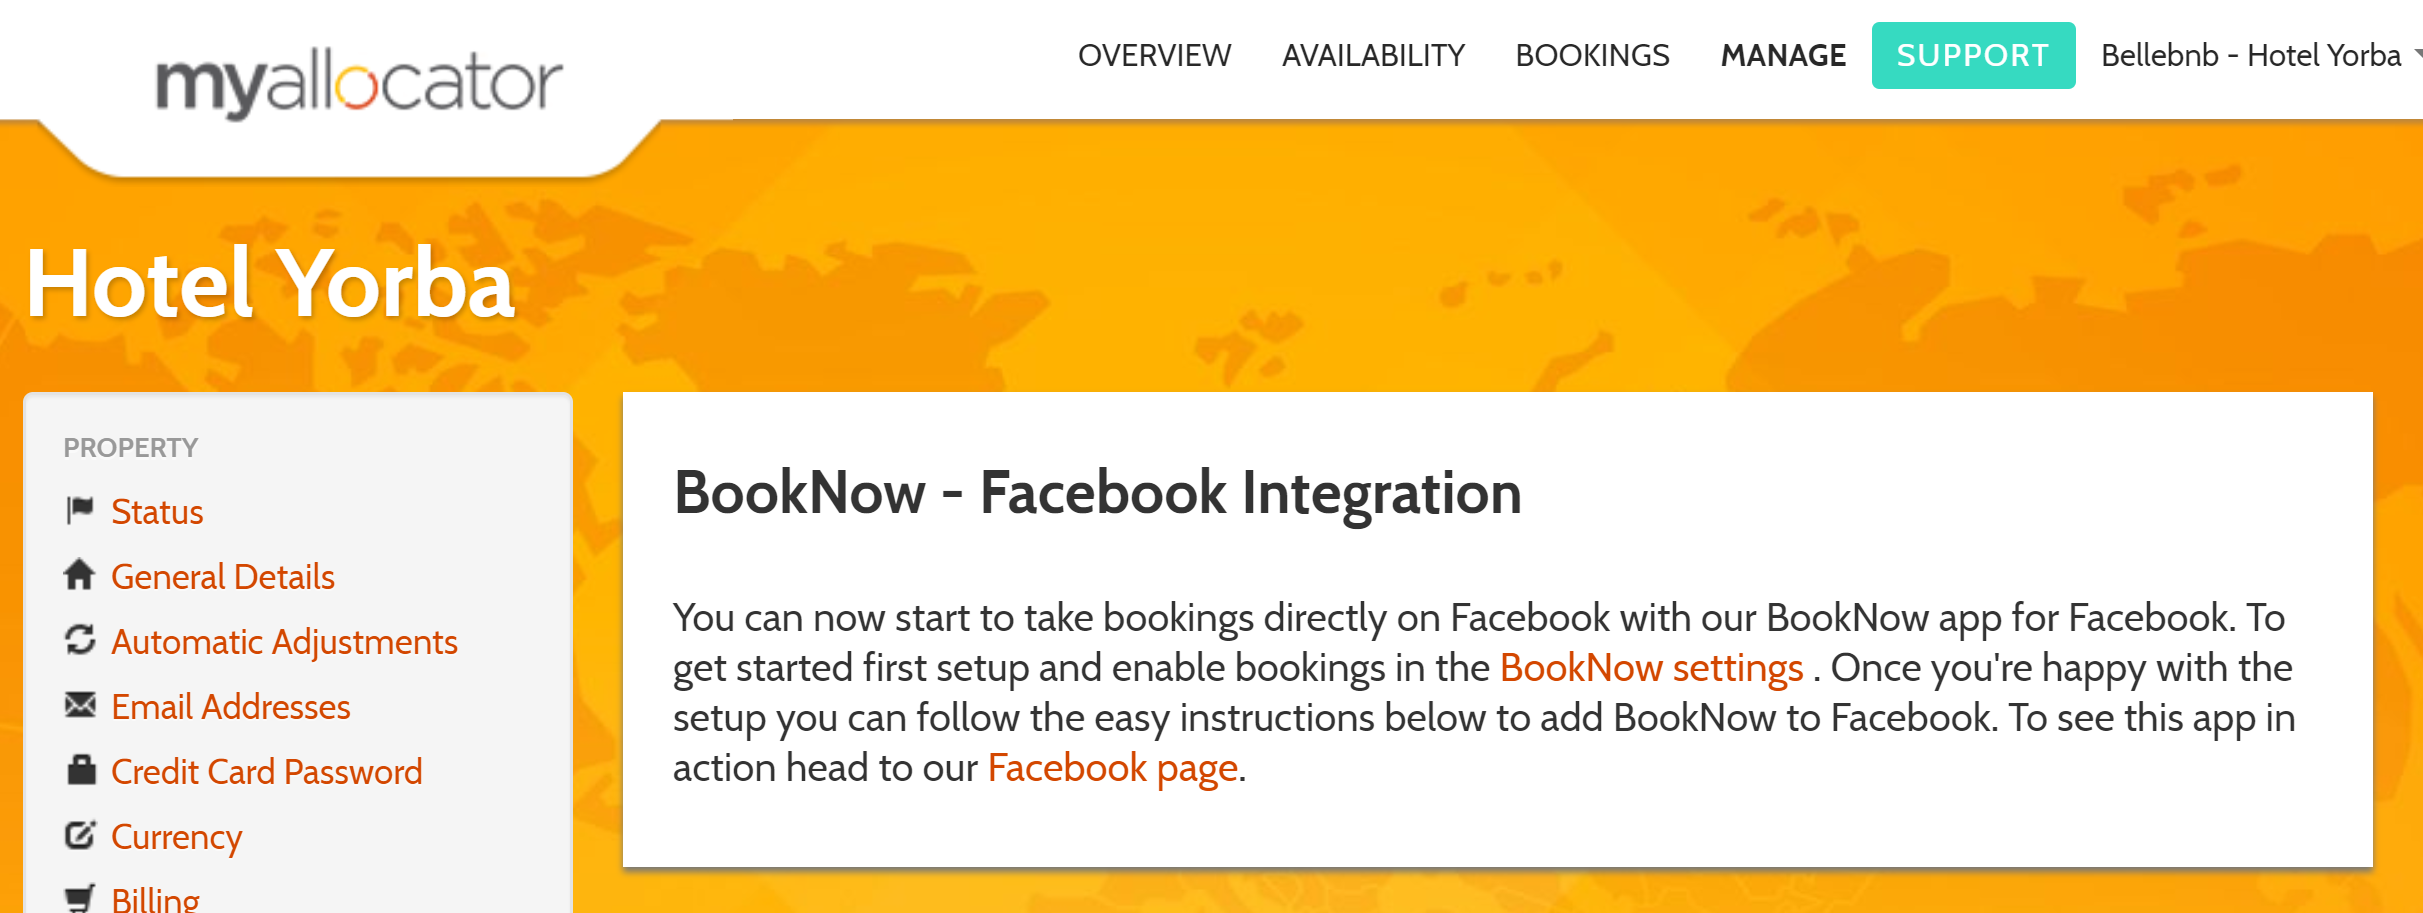 Facebook Integration You can accept reservations directly from your hotel's Facebook page using one of the embedding widgets available through our channel manager. Adding a booking widget can be done in just a couple of steps, and all your reservations that come in through your Facebook page are commission free